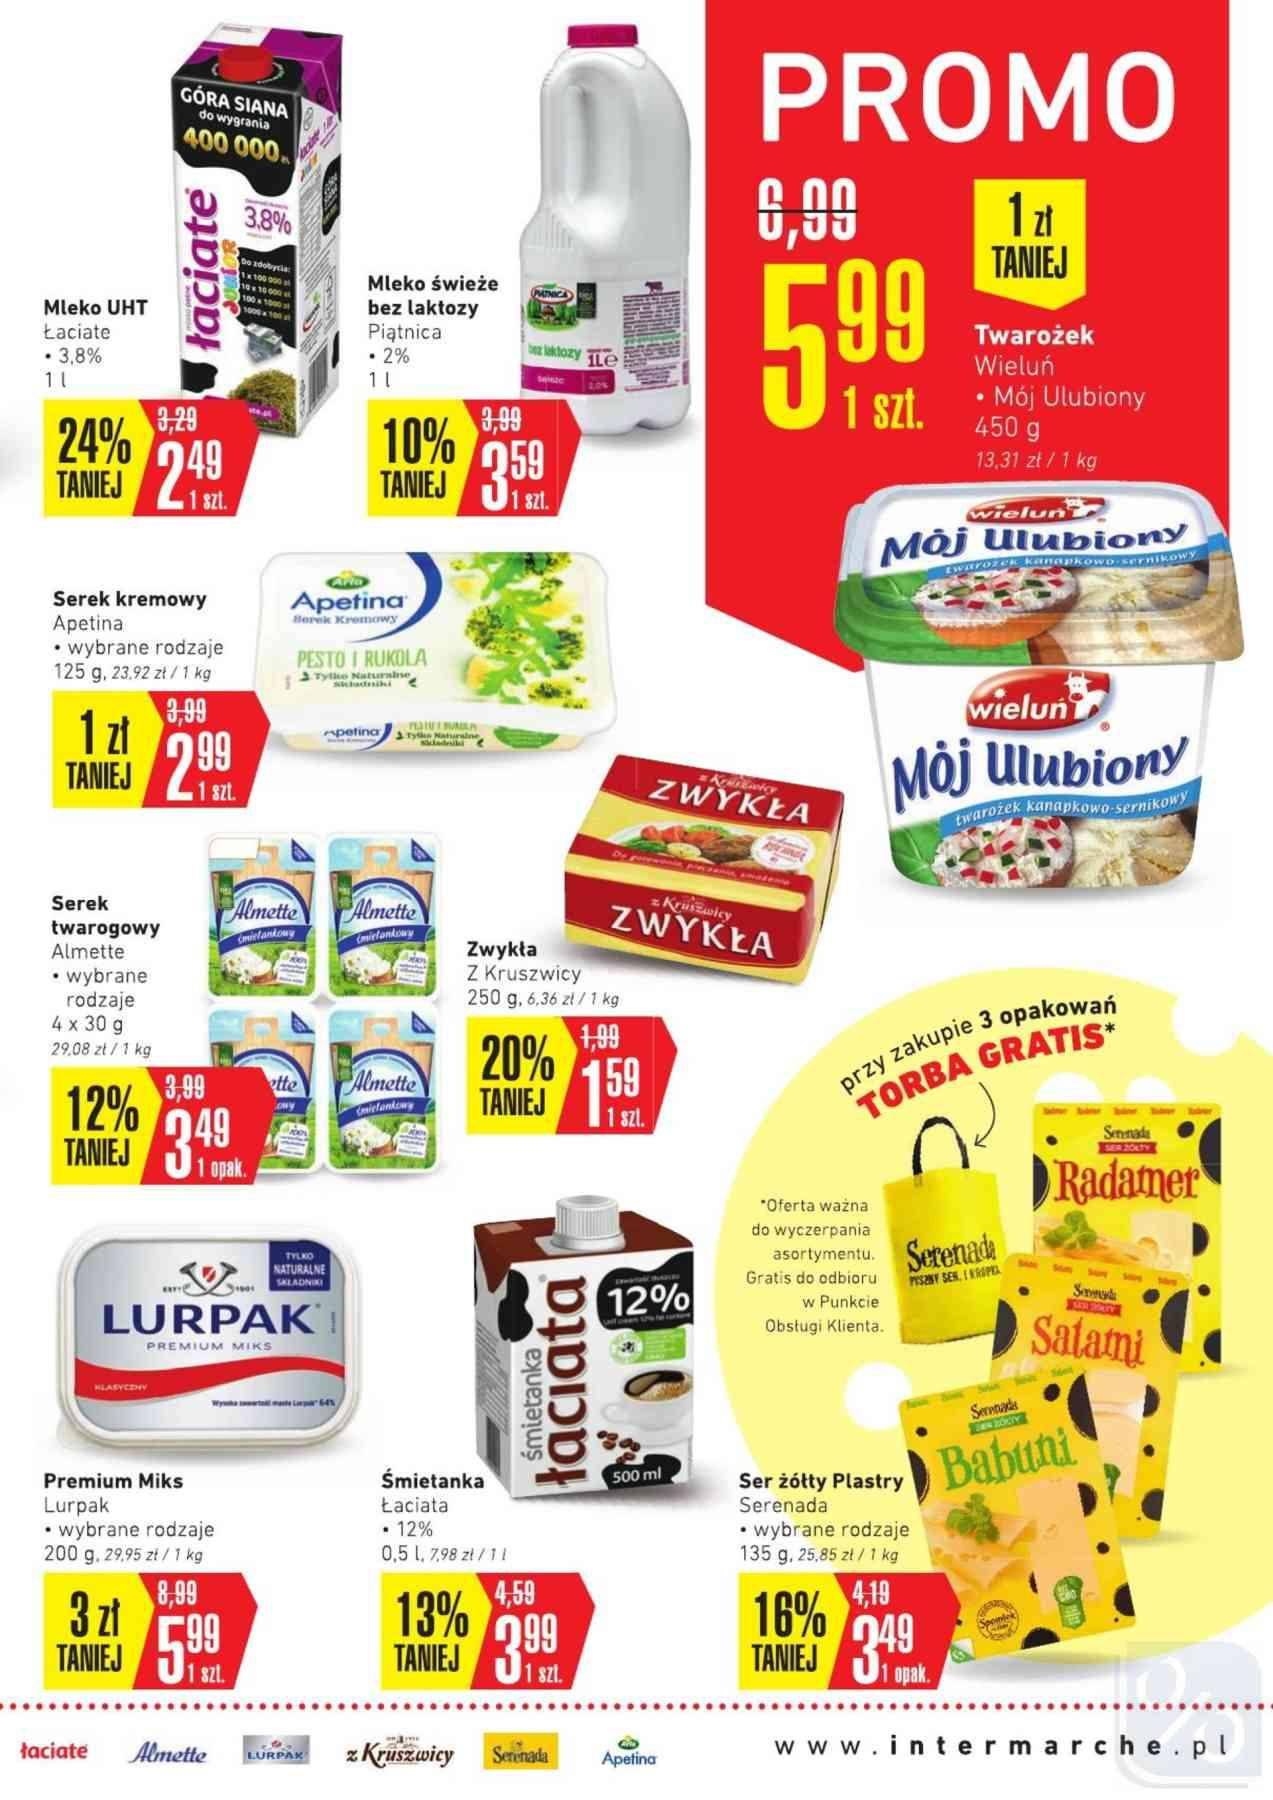 Gazetka promocyjna Intermarche do 12/11/2018 str.8